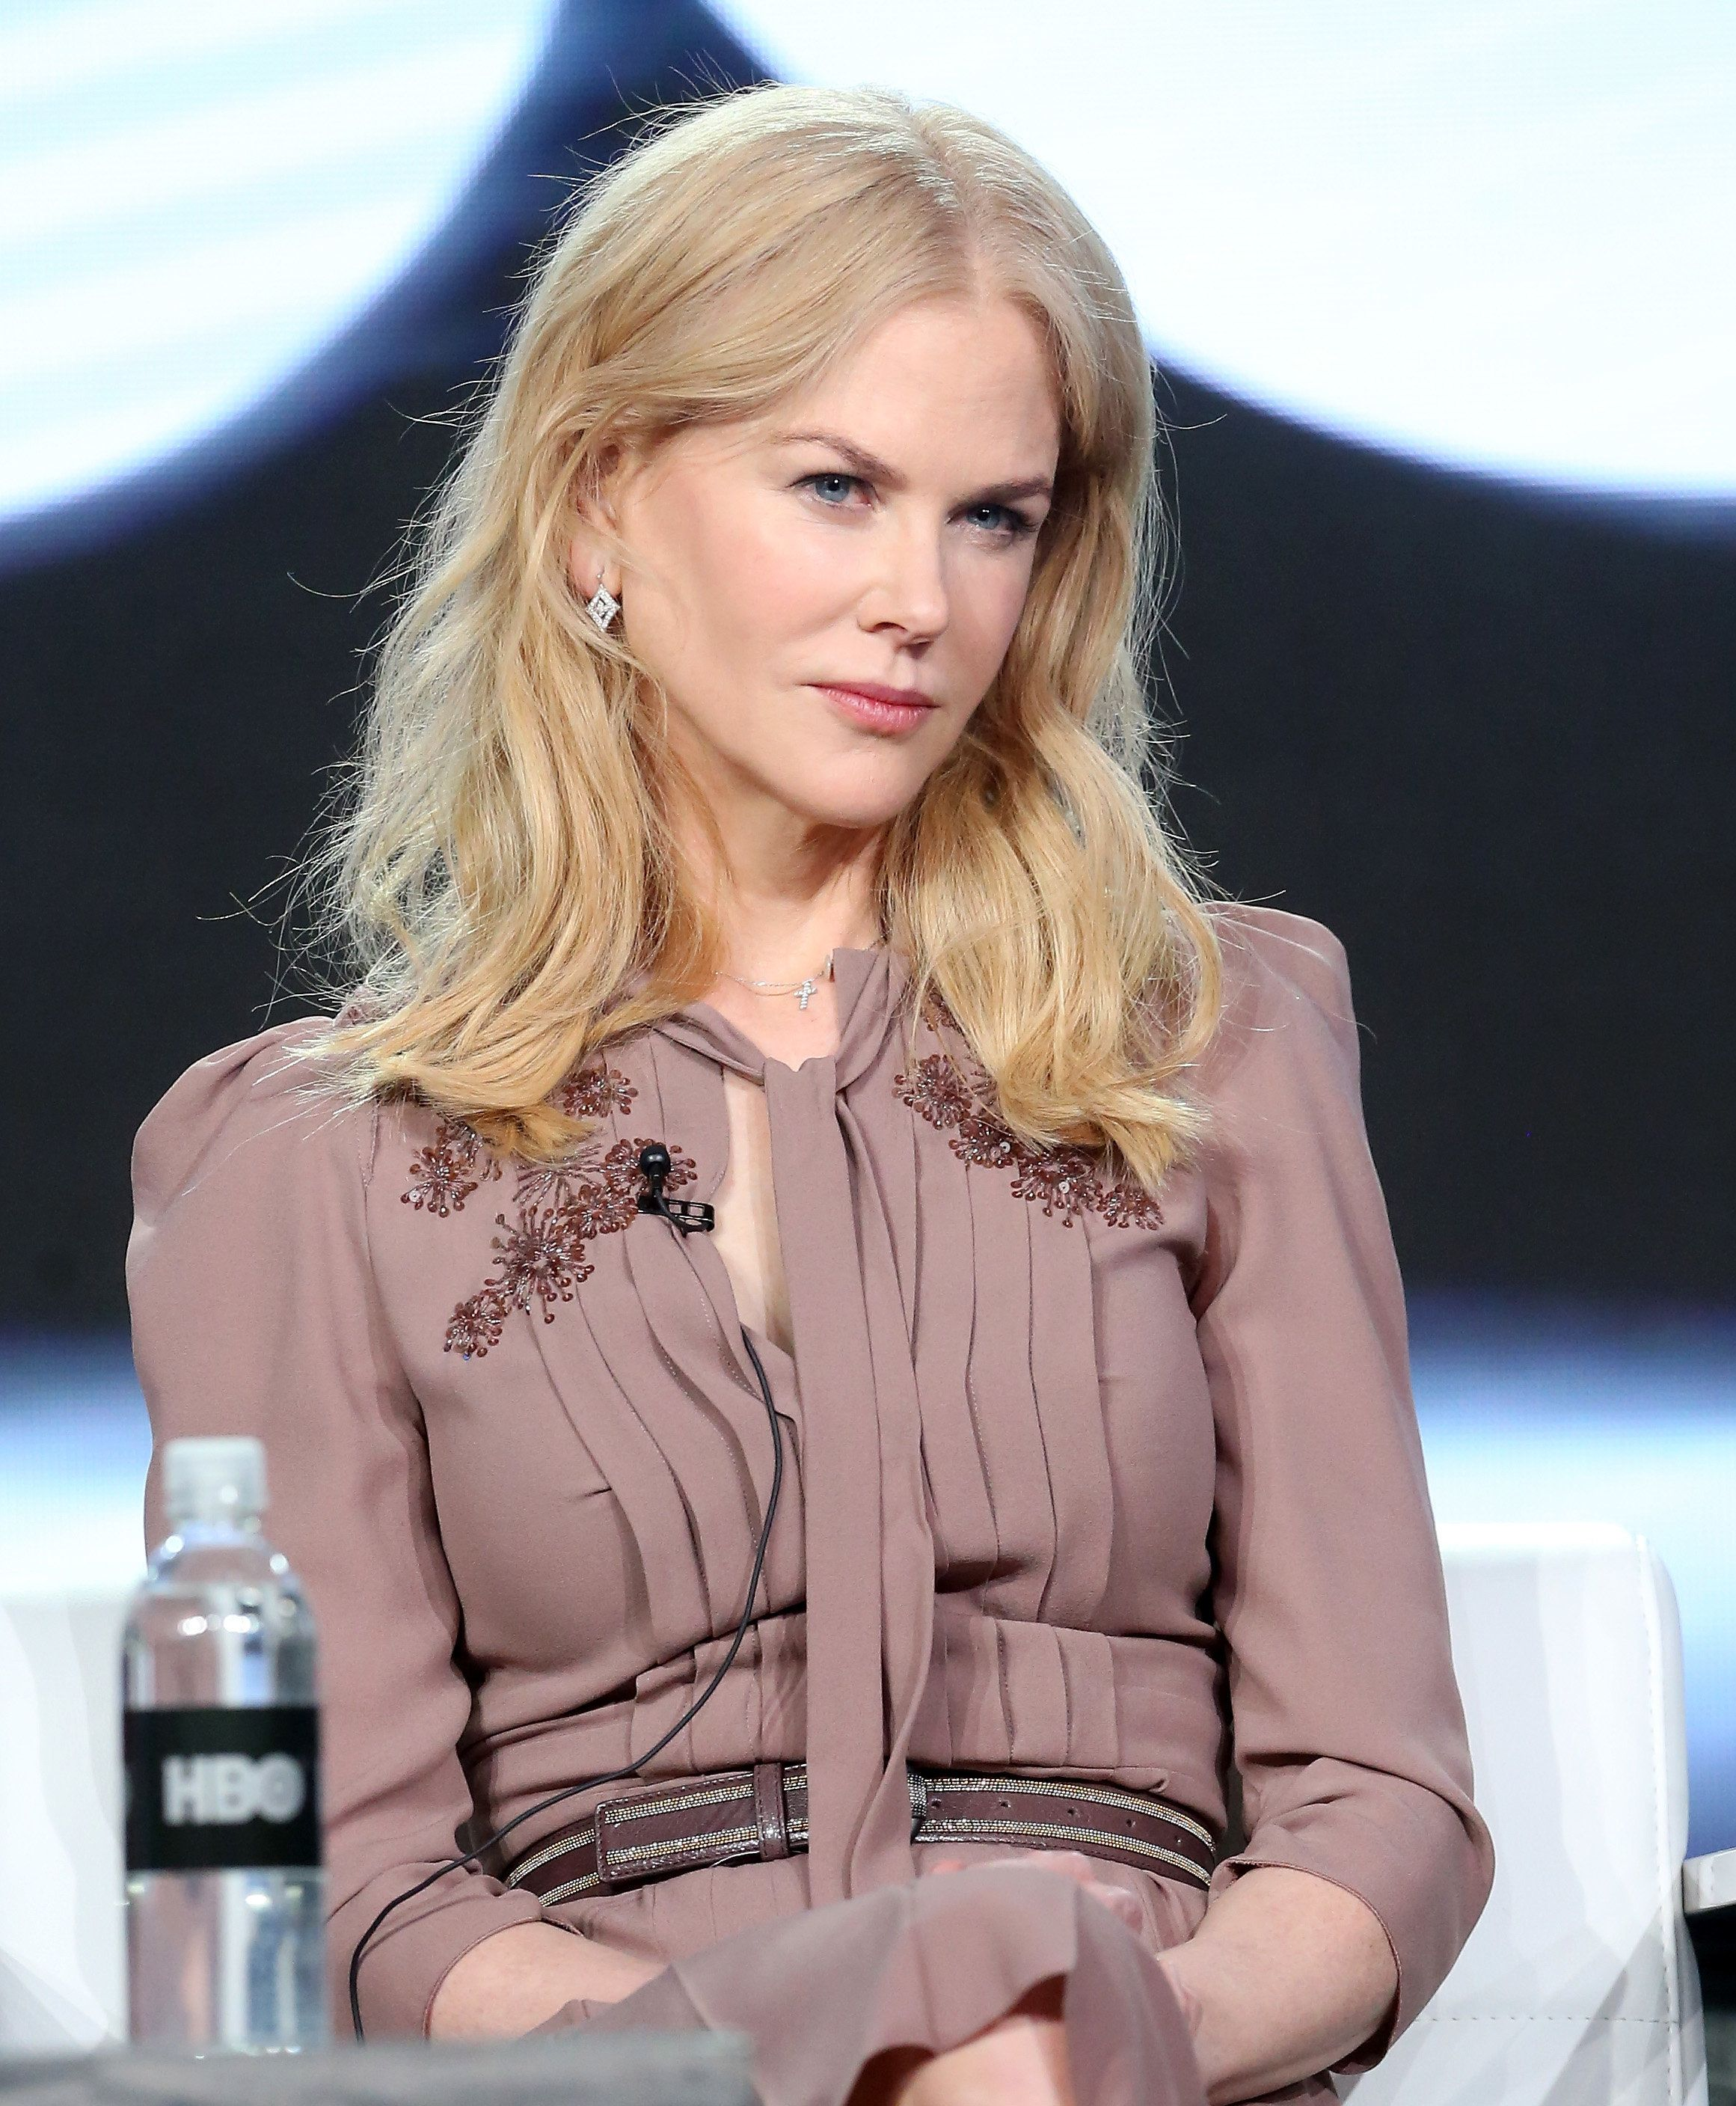 PASADENA, CA - JANUARY 14:  Executive producer/actress Nicole Kidman of the series 'Big Little Lies' speaks onstage during the HBO portion of the 2017 Winter Television Critics Association Press Tour at the Langham Hotel on January 14, 2017 in Pasadena, California.  (Photo by Frederick M. Brown/Getty Images)